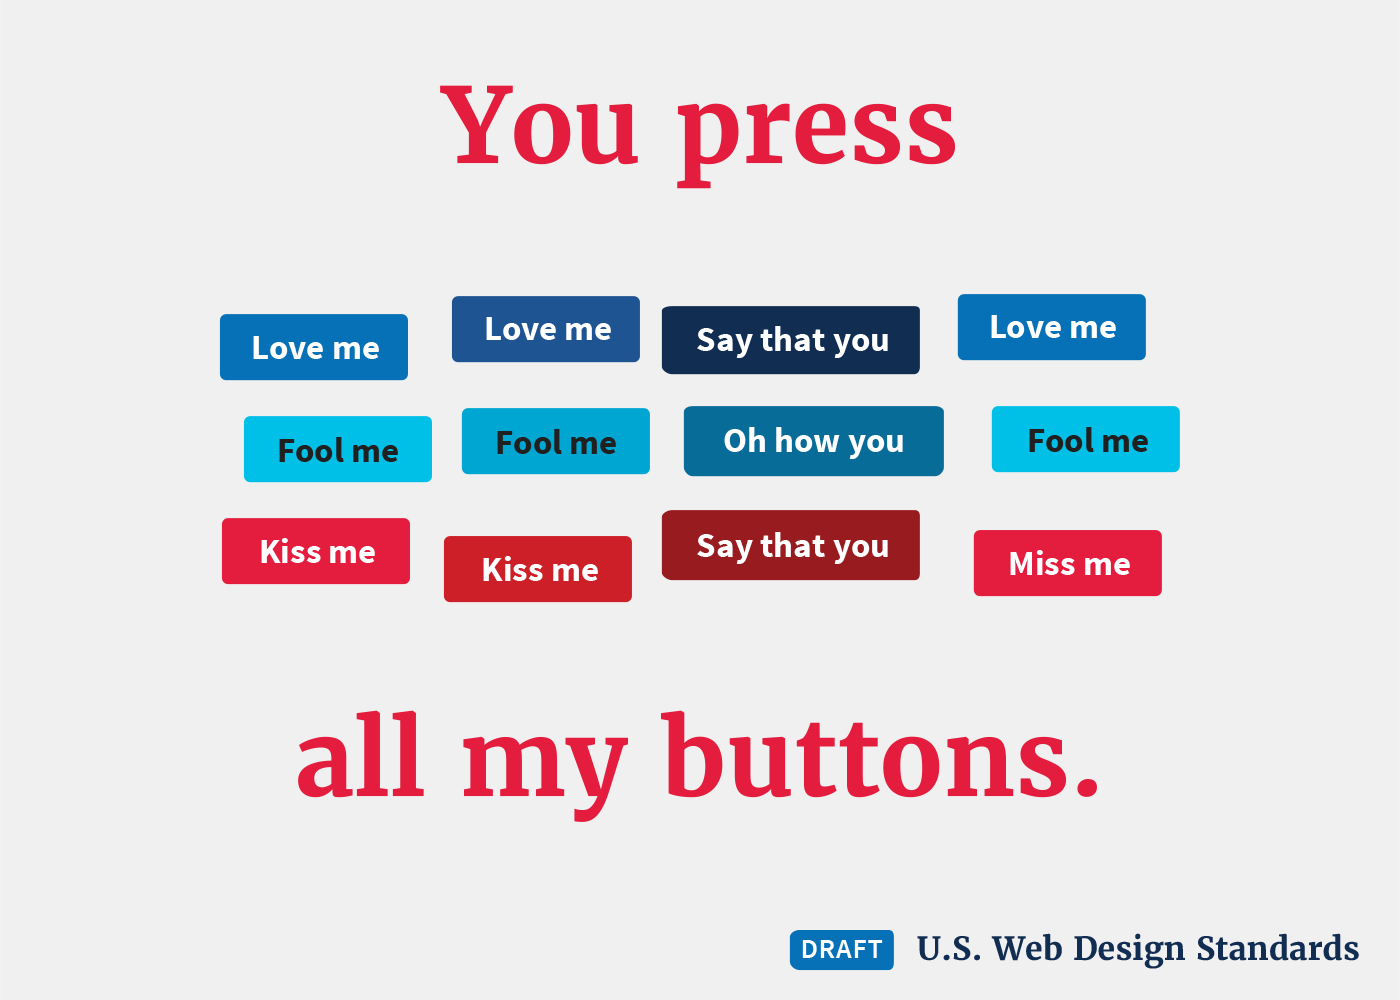 Valentines messages written on the draft web standards button templates.